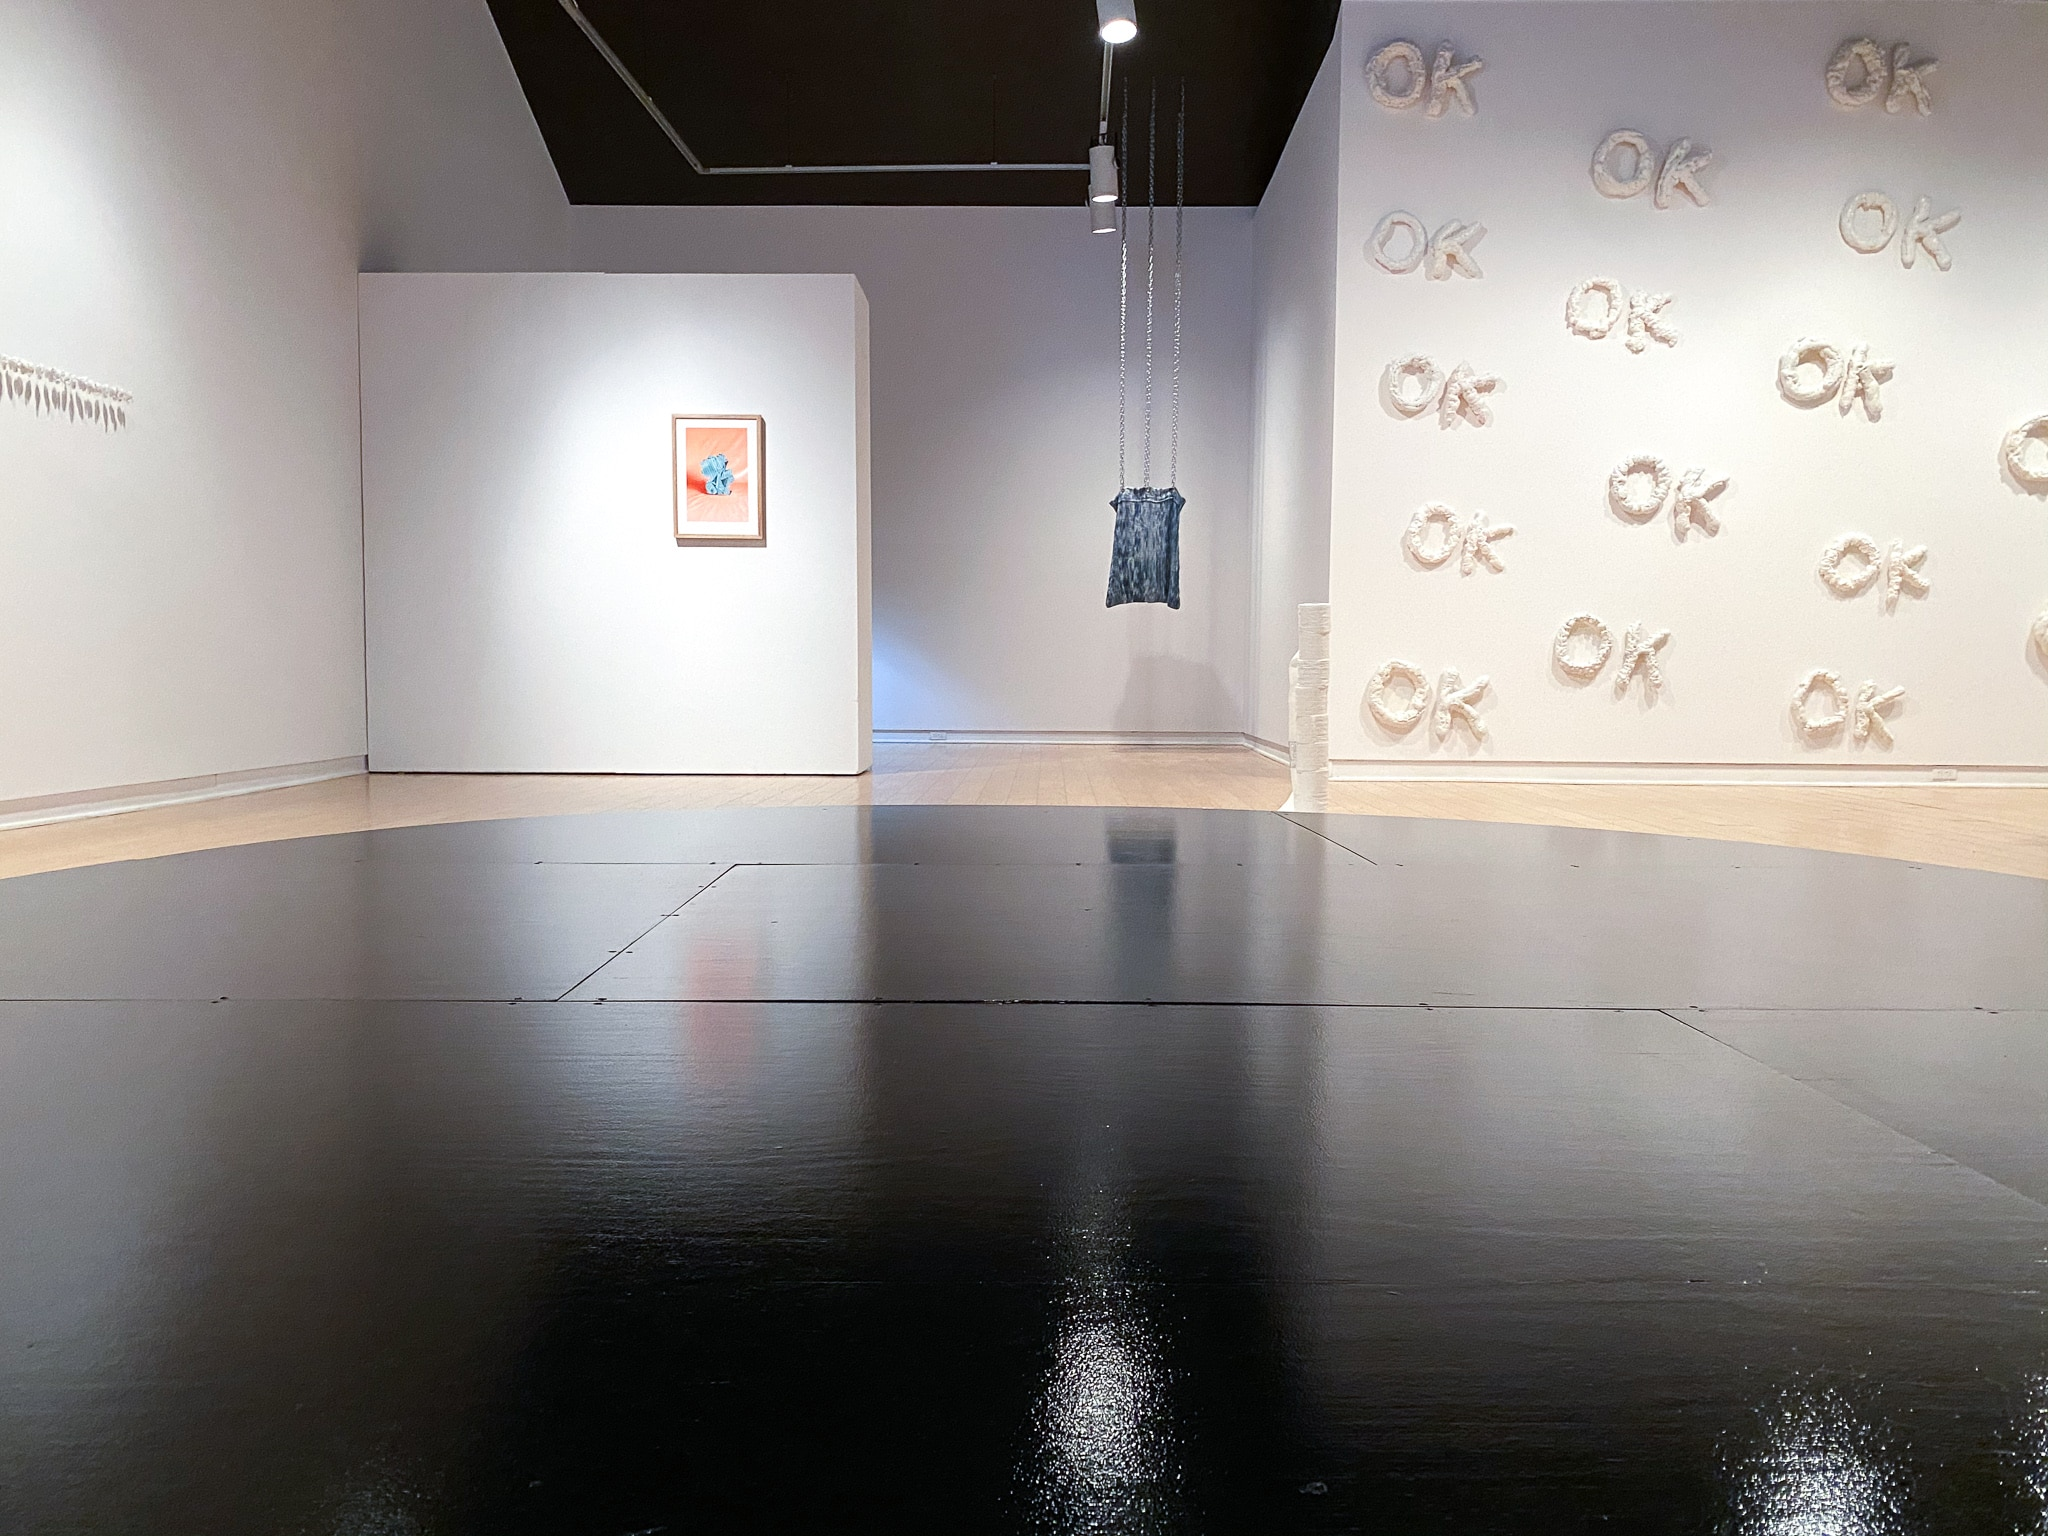 Gallery view of the exhibition Presently. Various works installed in the AGP's main gallery.